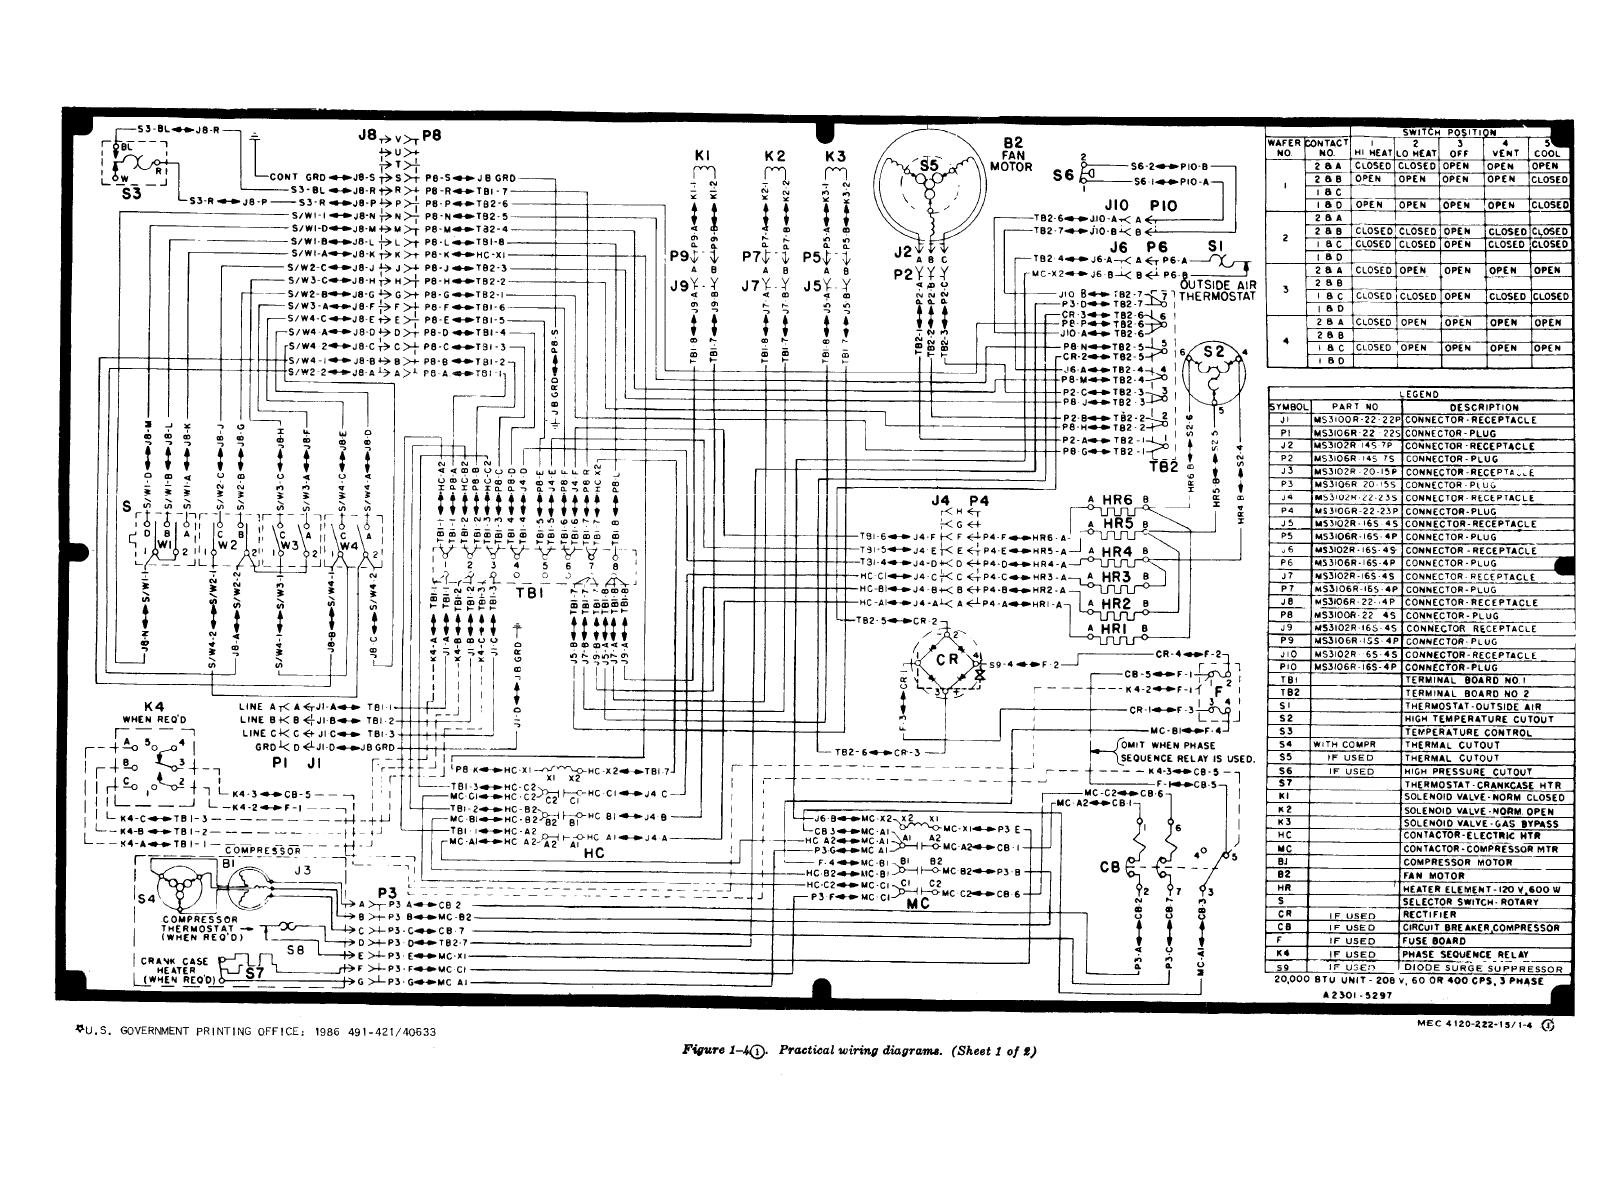 Wiring Diagram For Trane Thermostat | Wiring Library - Trane Thermostat Wiring Diagram